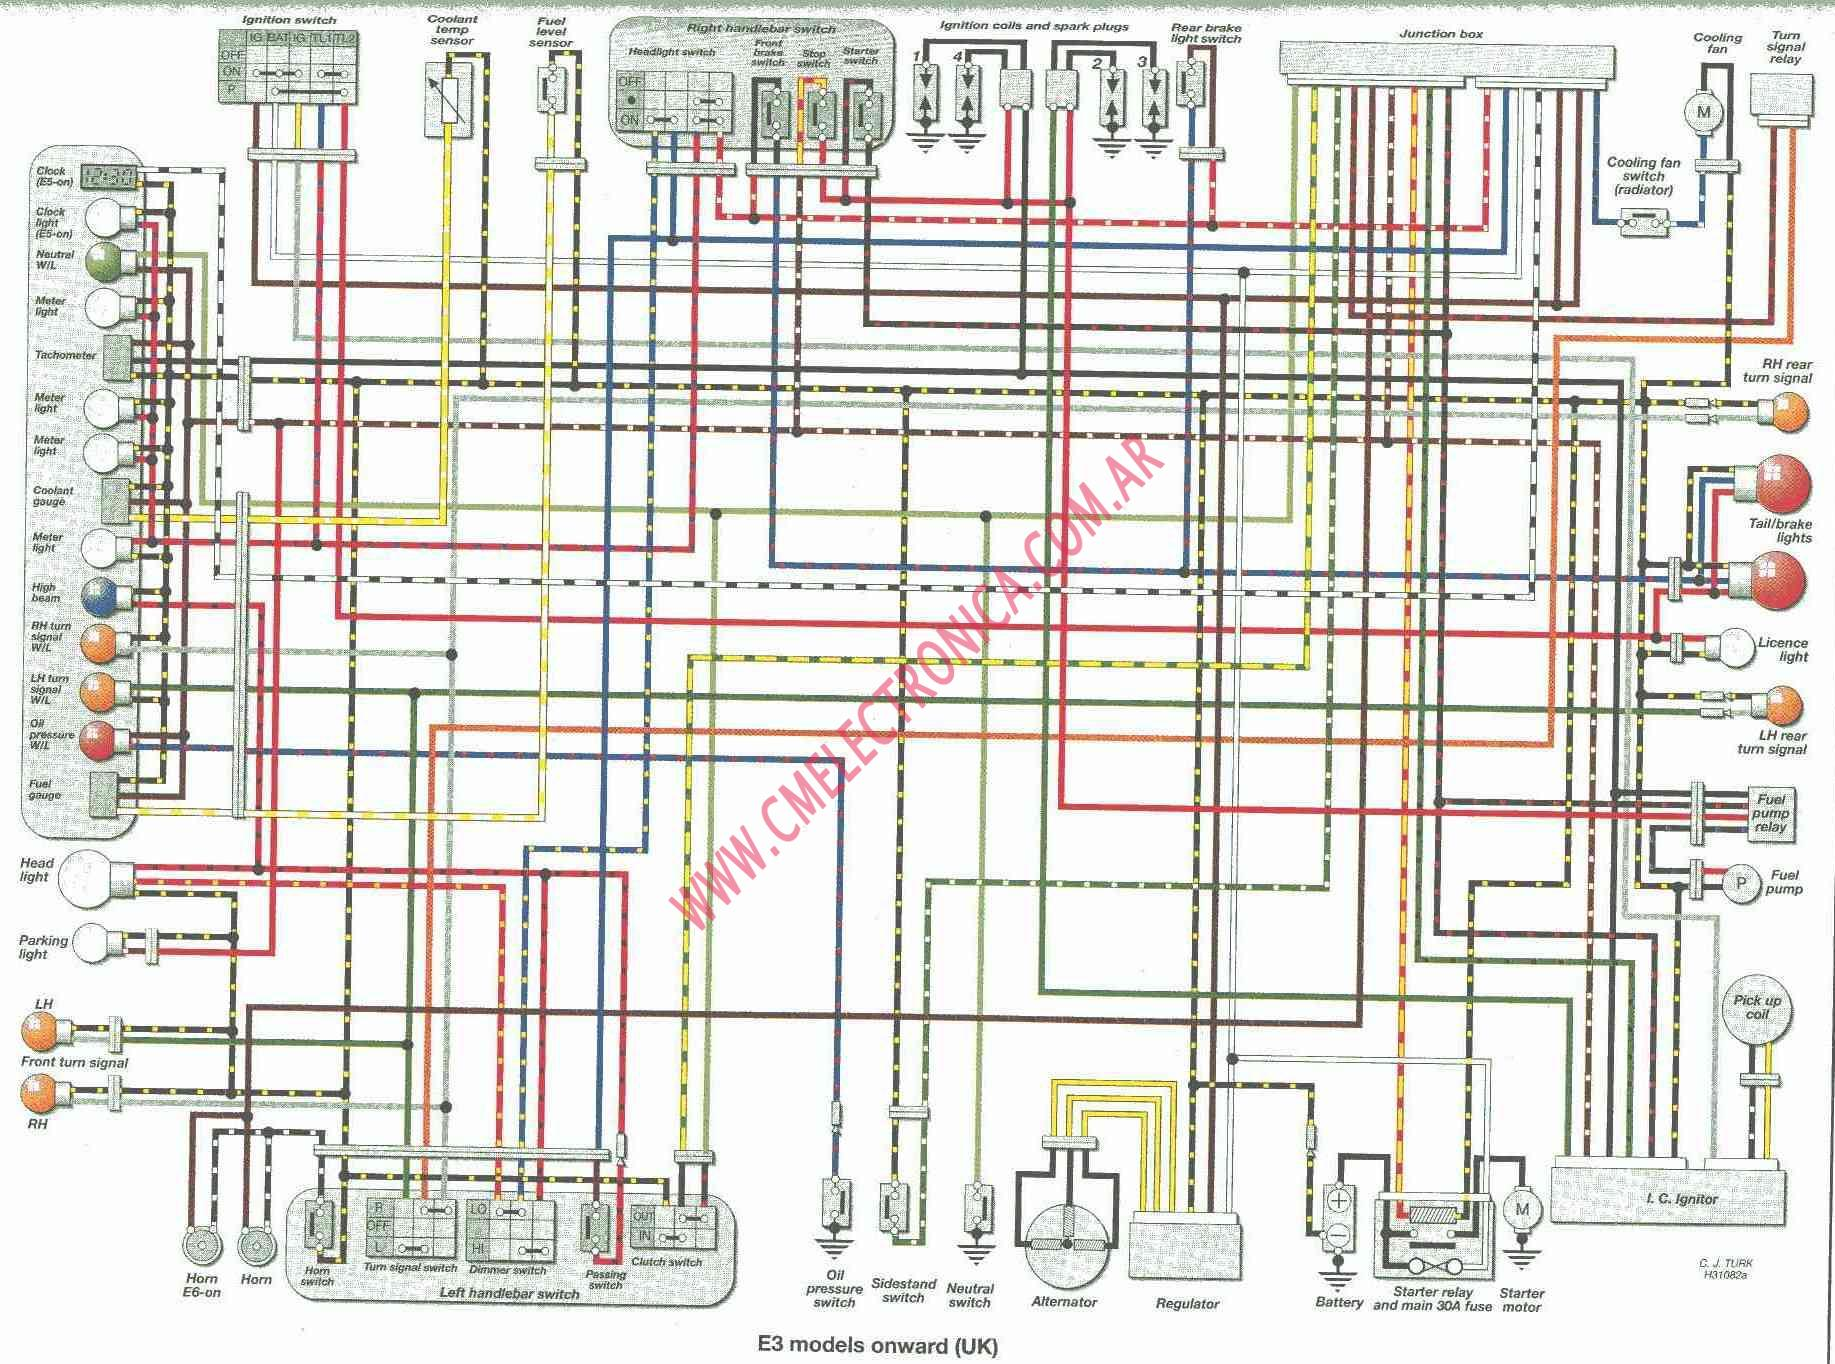 kawasaki zzr600_99 on 2006 kawasaki zzr600 wiring diagram data wiring diagram